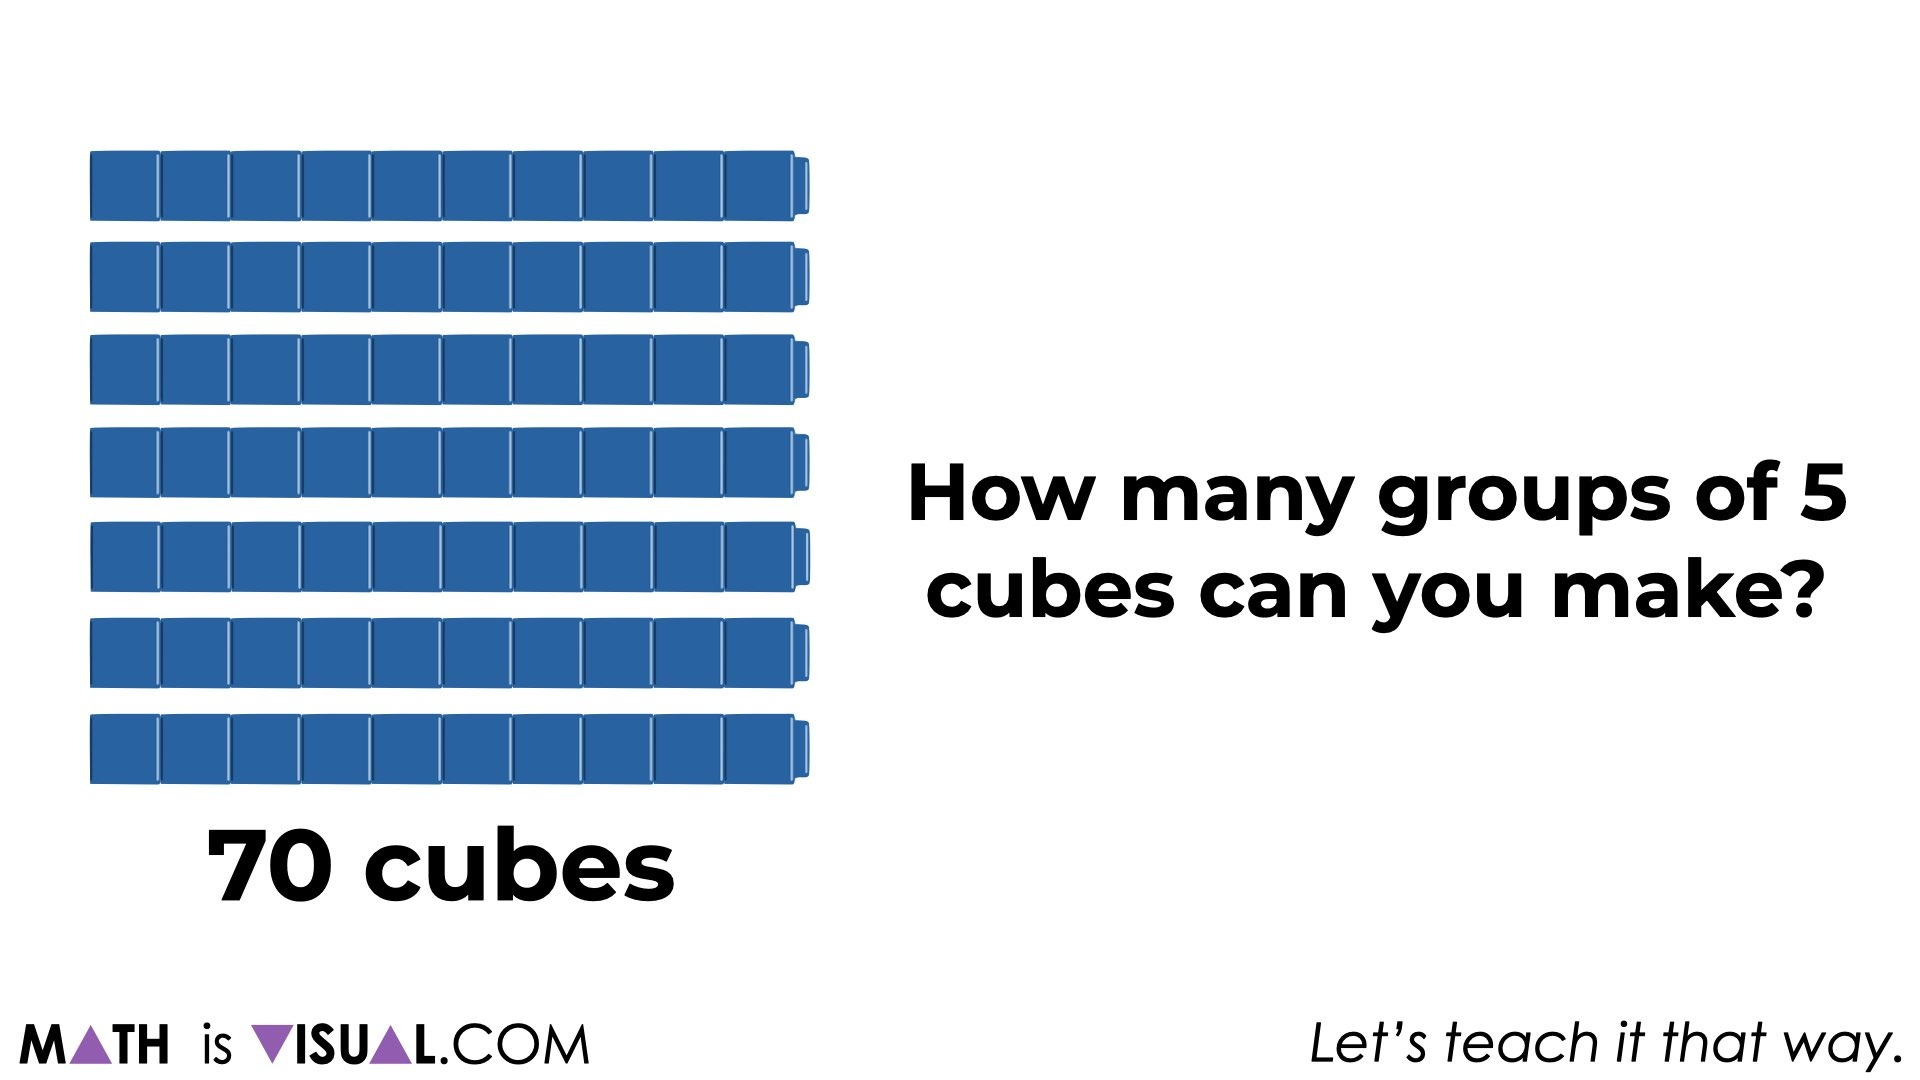 how many groups of 5 cubes can you make with 70